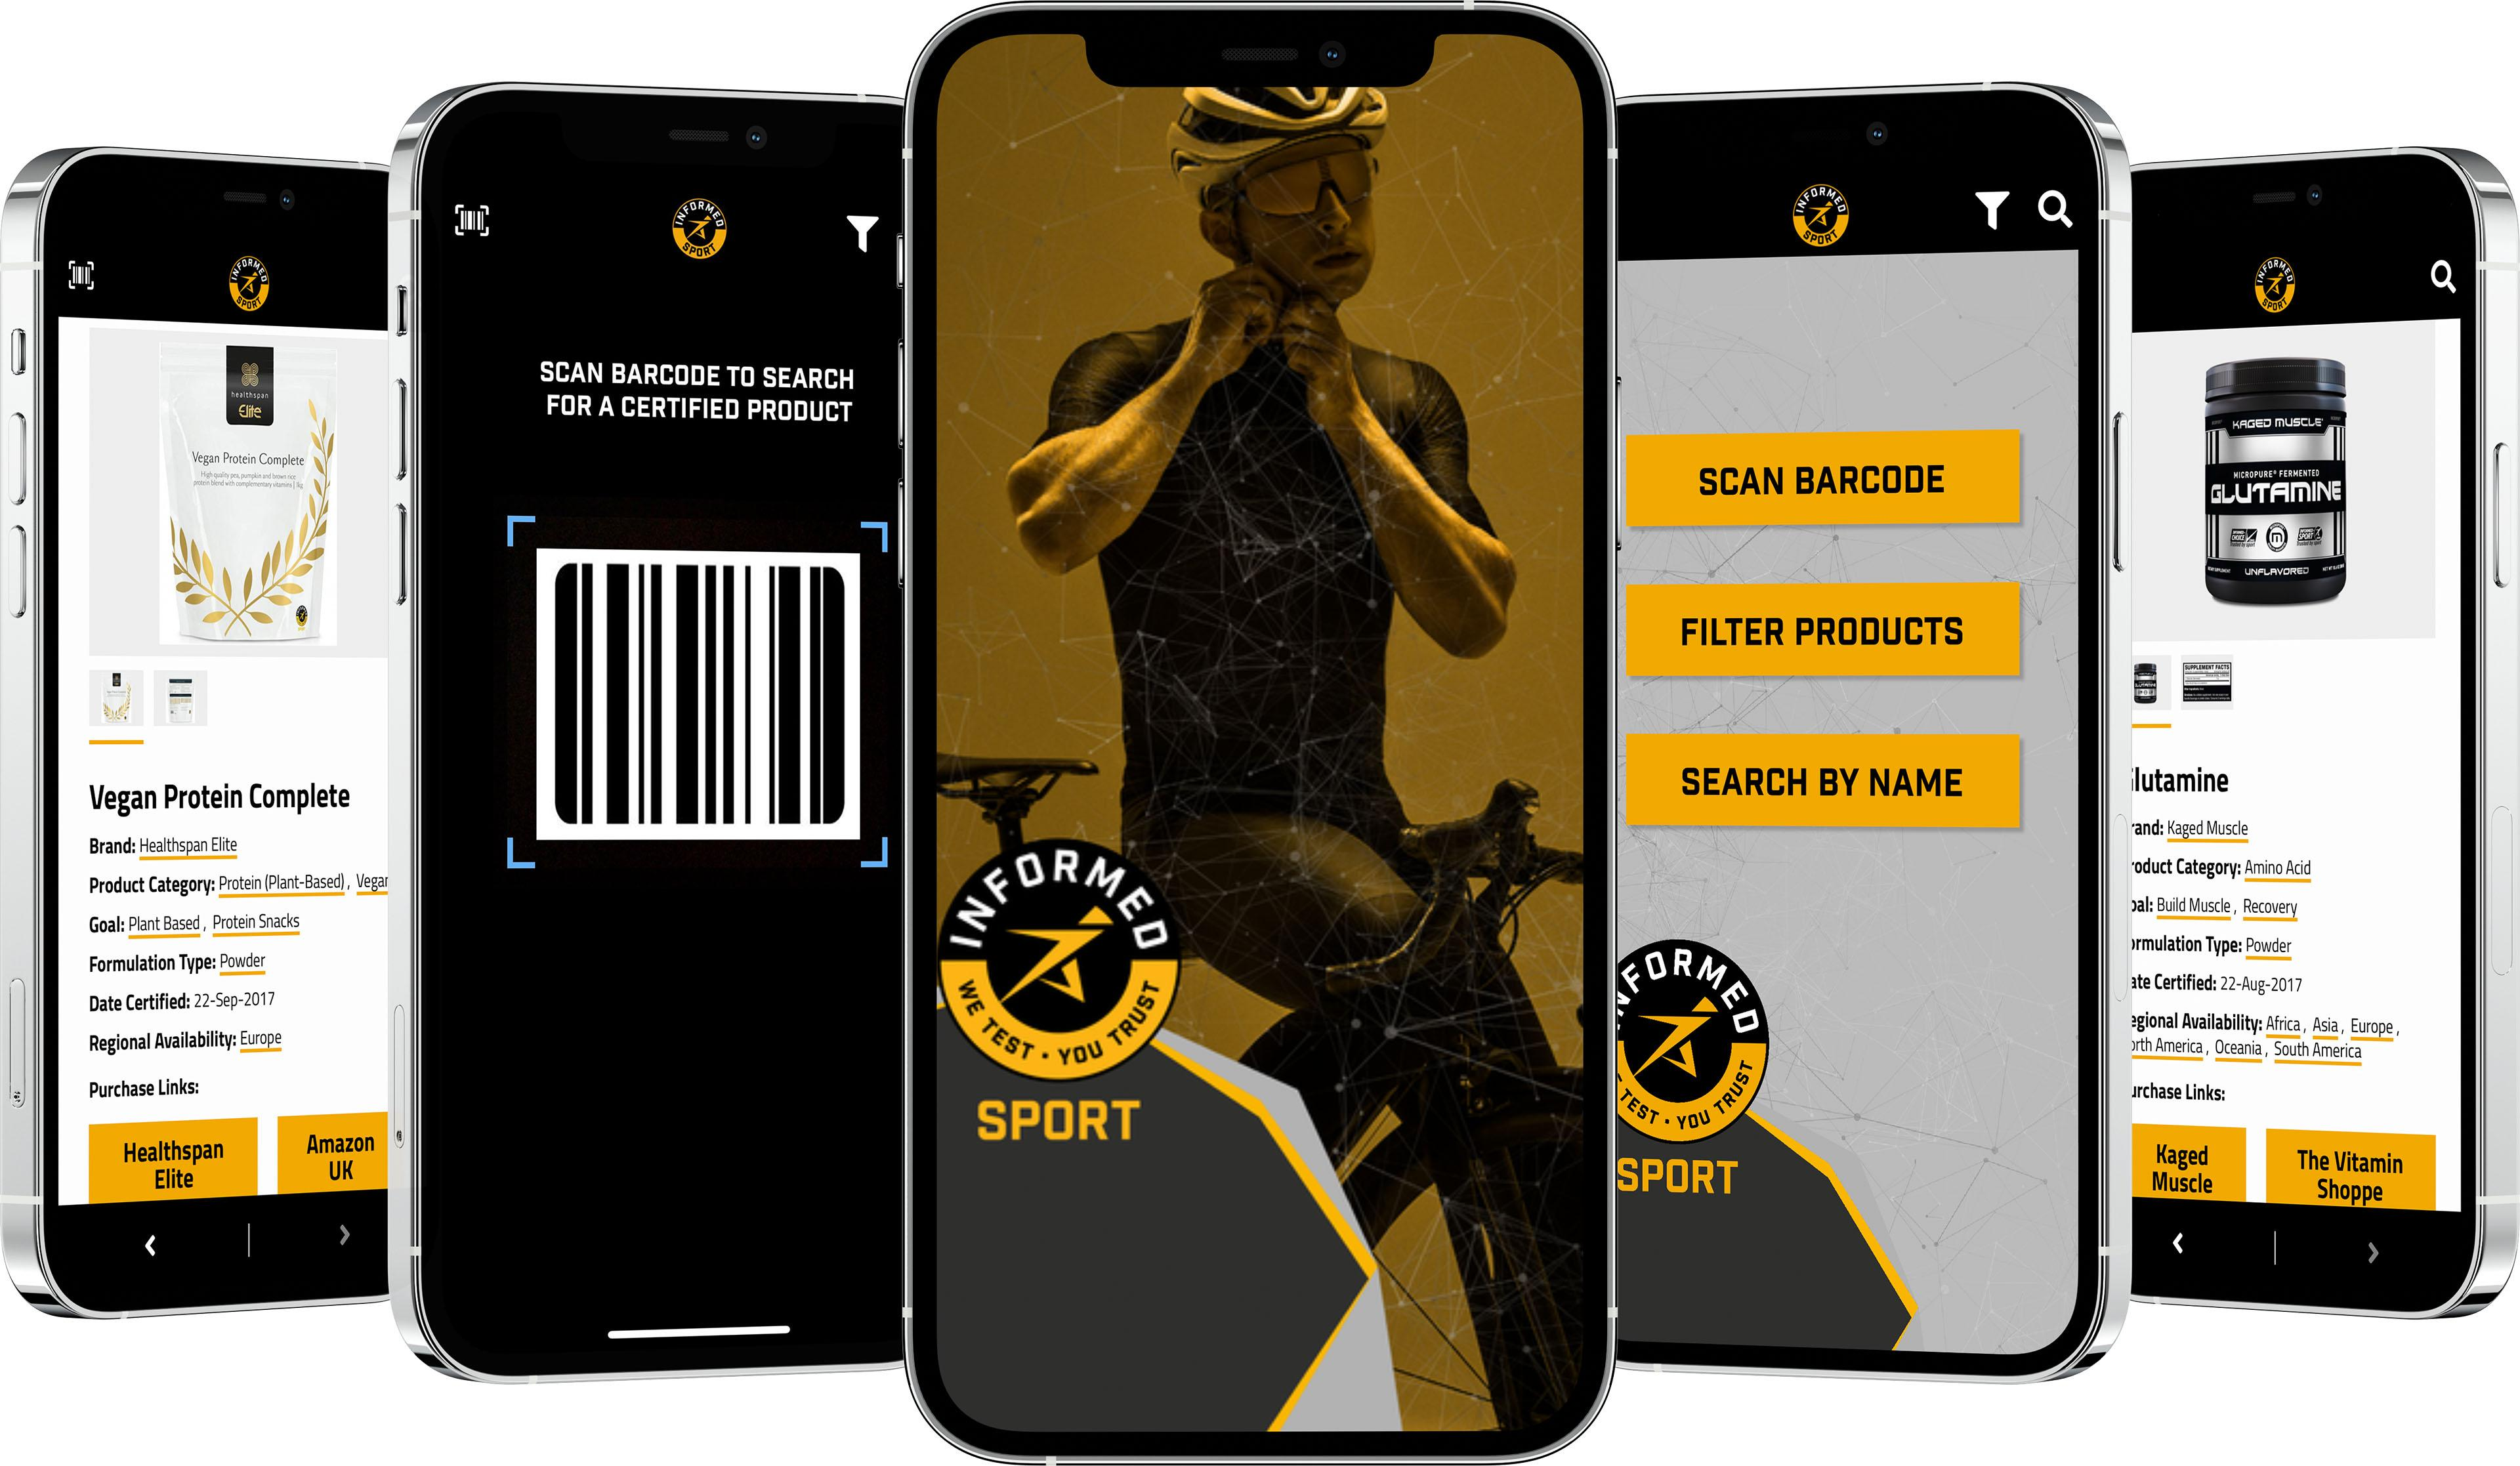 Several phones with Informed Sport app